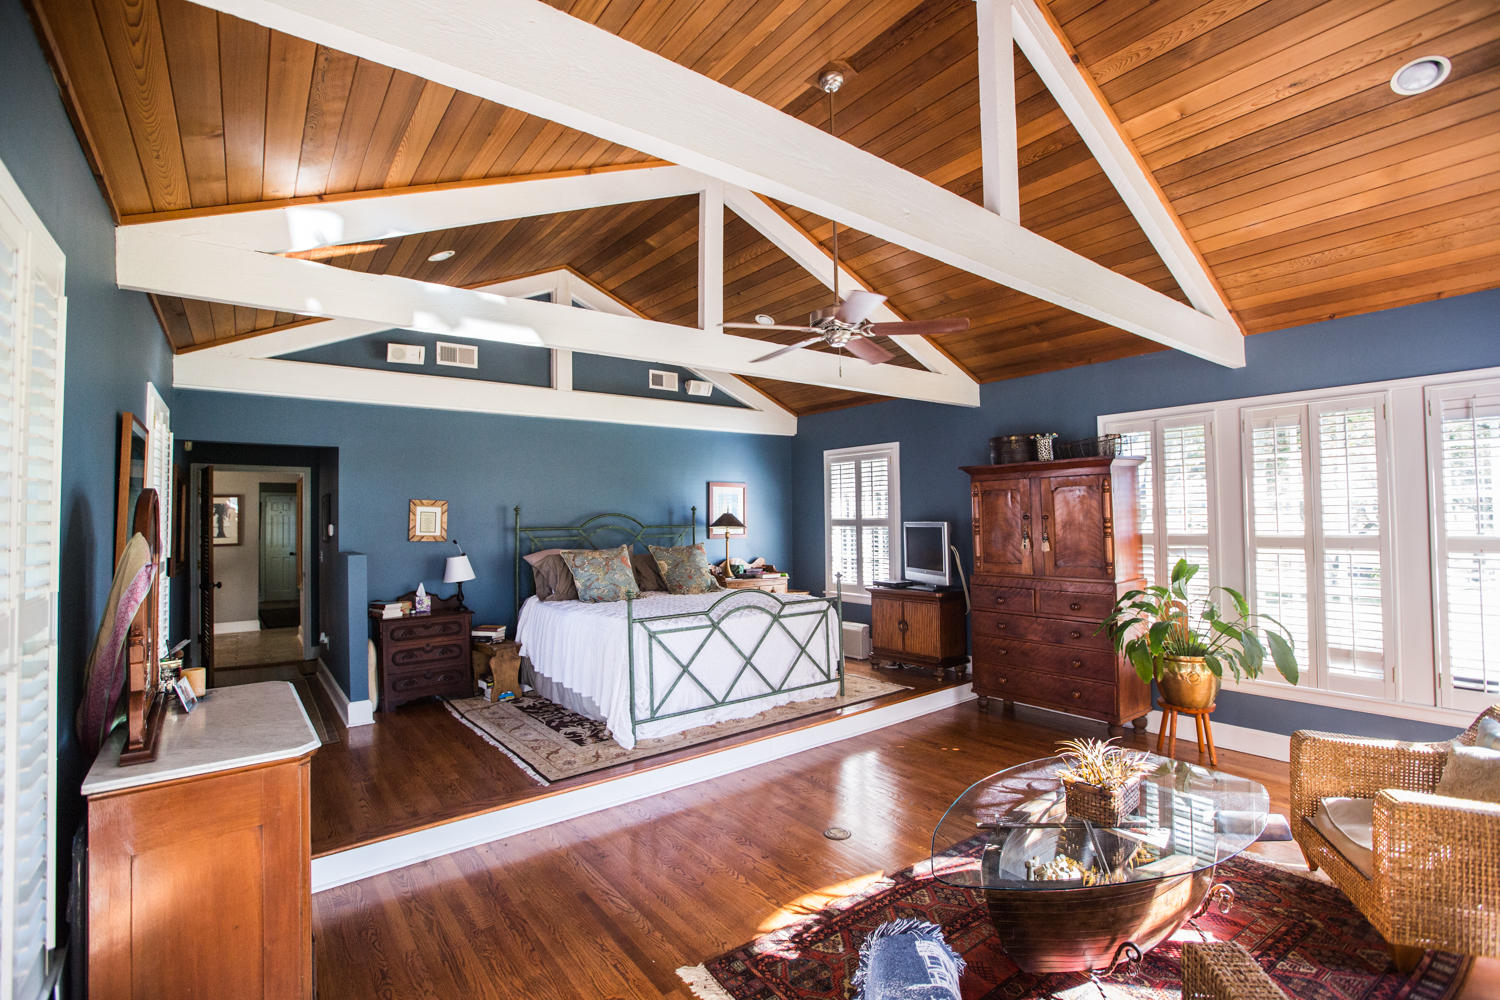 Edgewater Park Homes For Sale - 120 Edgewater, Charleston, SC - 60